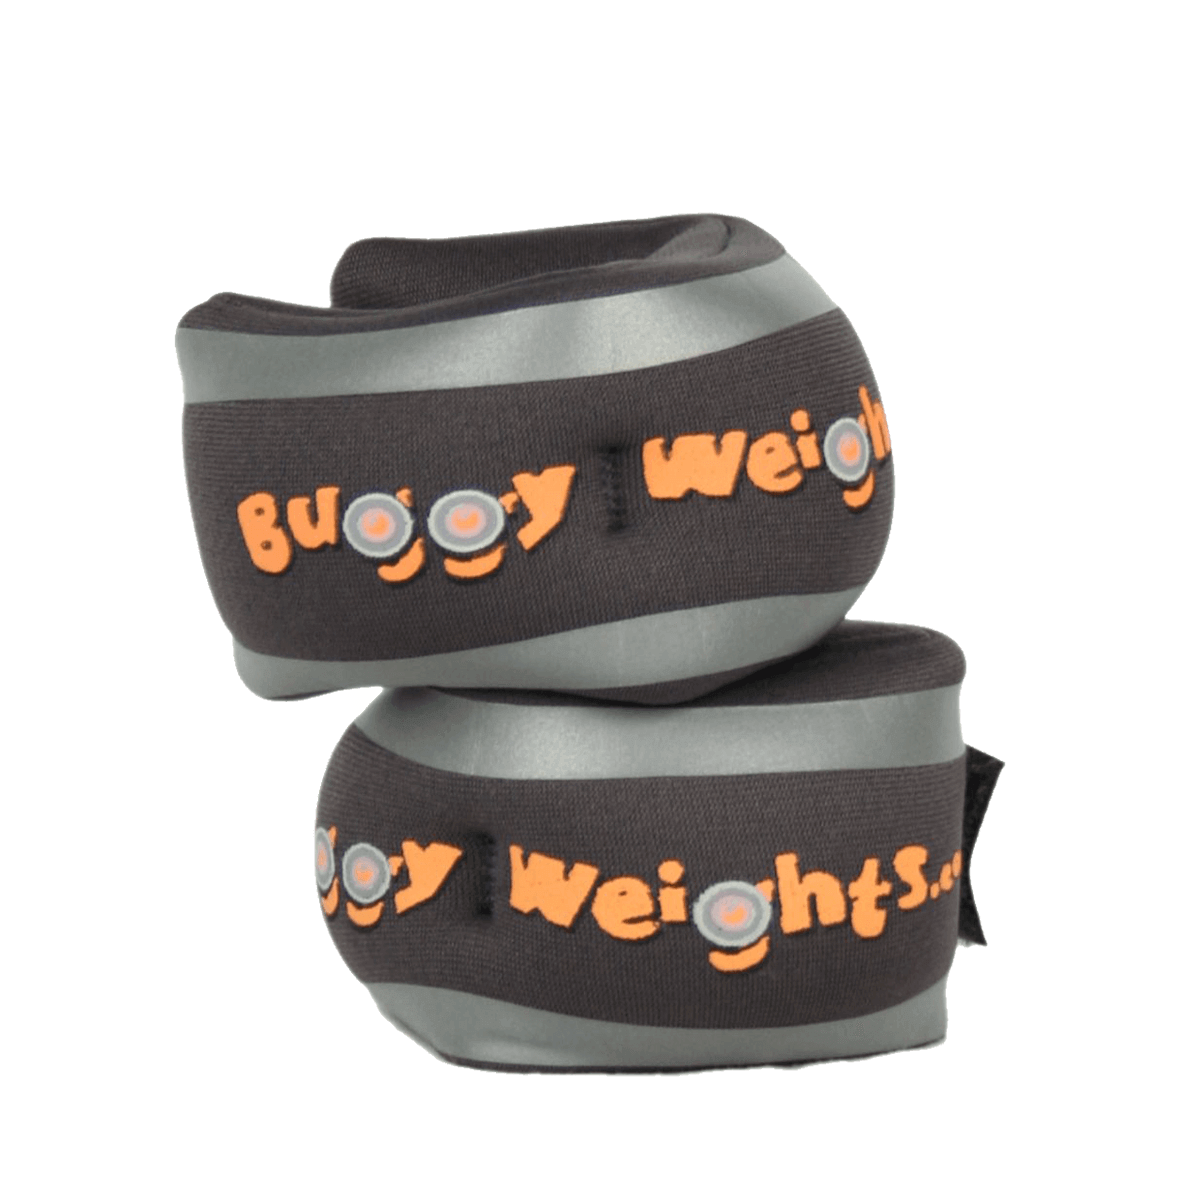 Buggyweights / Contains 2 Weights